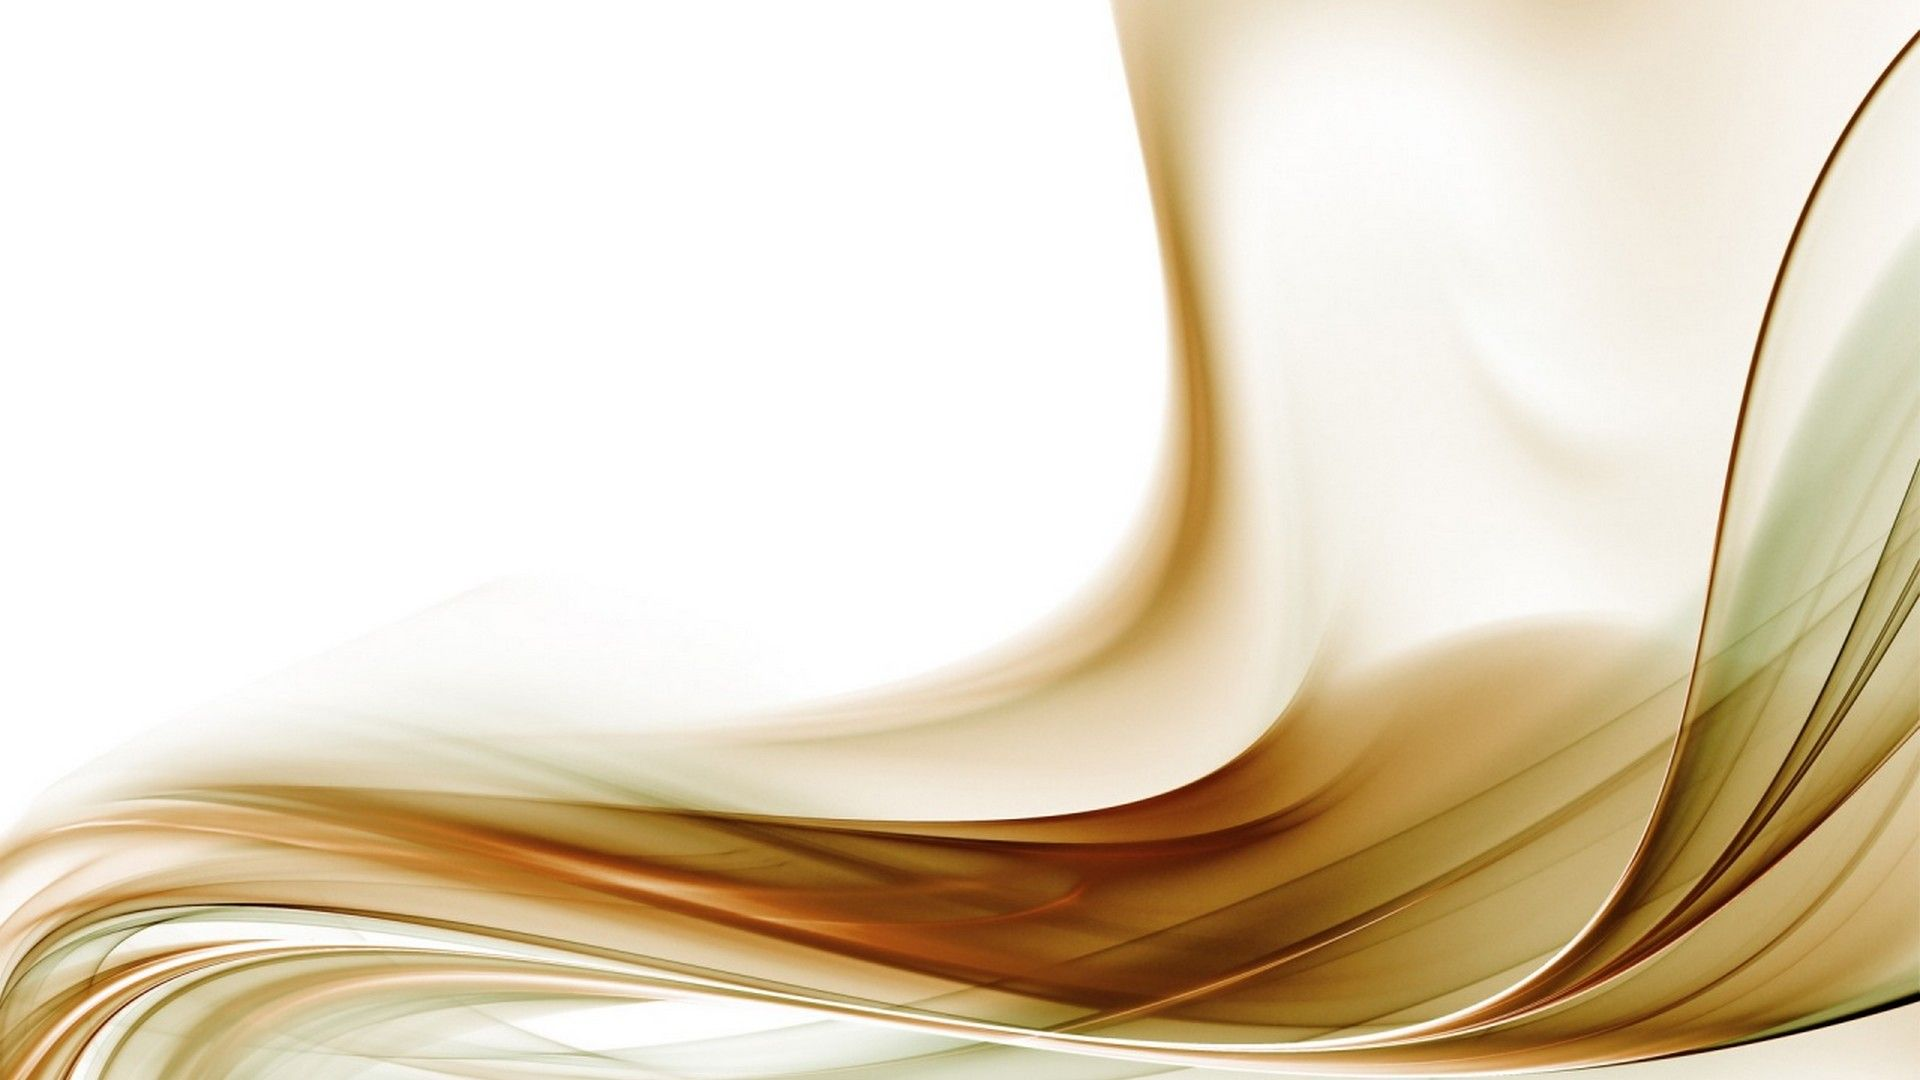 White And Gold Wallpaper Best Hd Wallpapers White And Gold Wallpaper Gold Wallpaper White Background Wallpaper